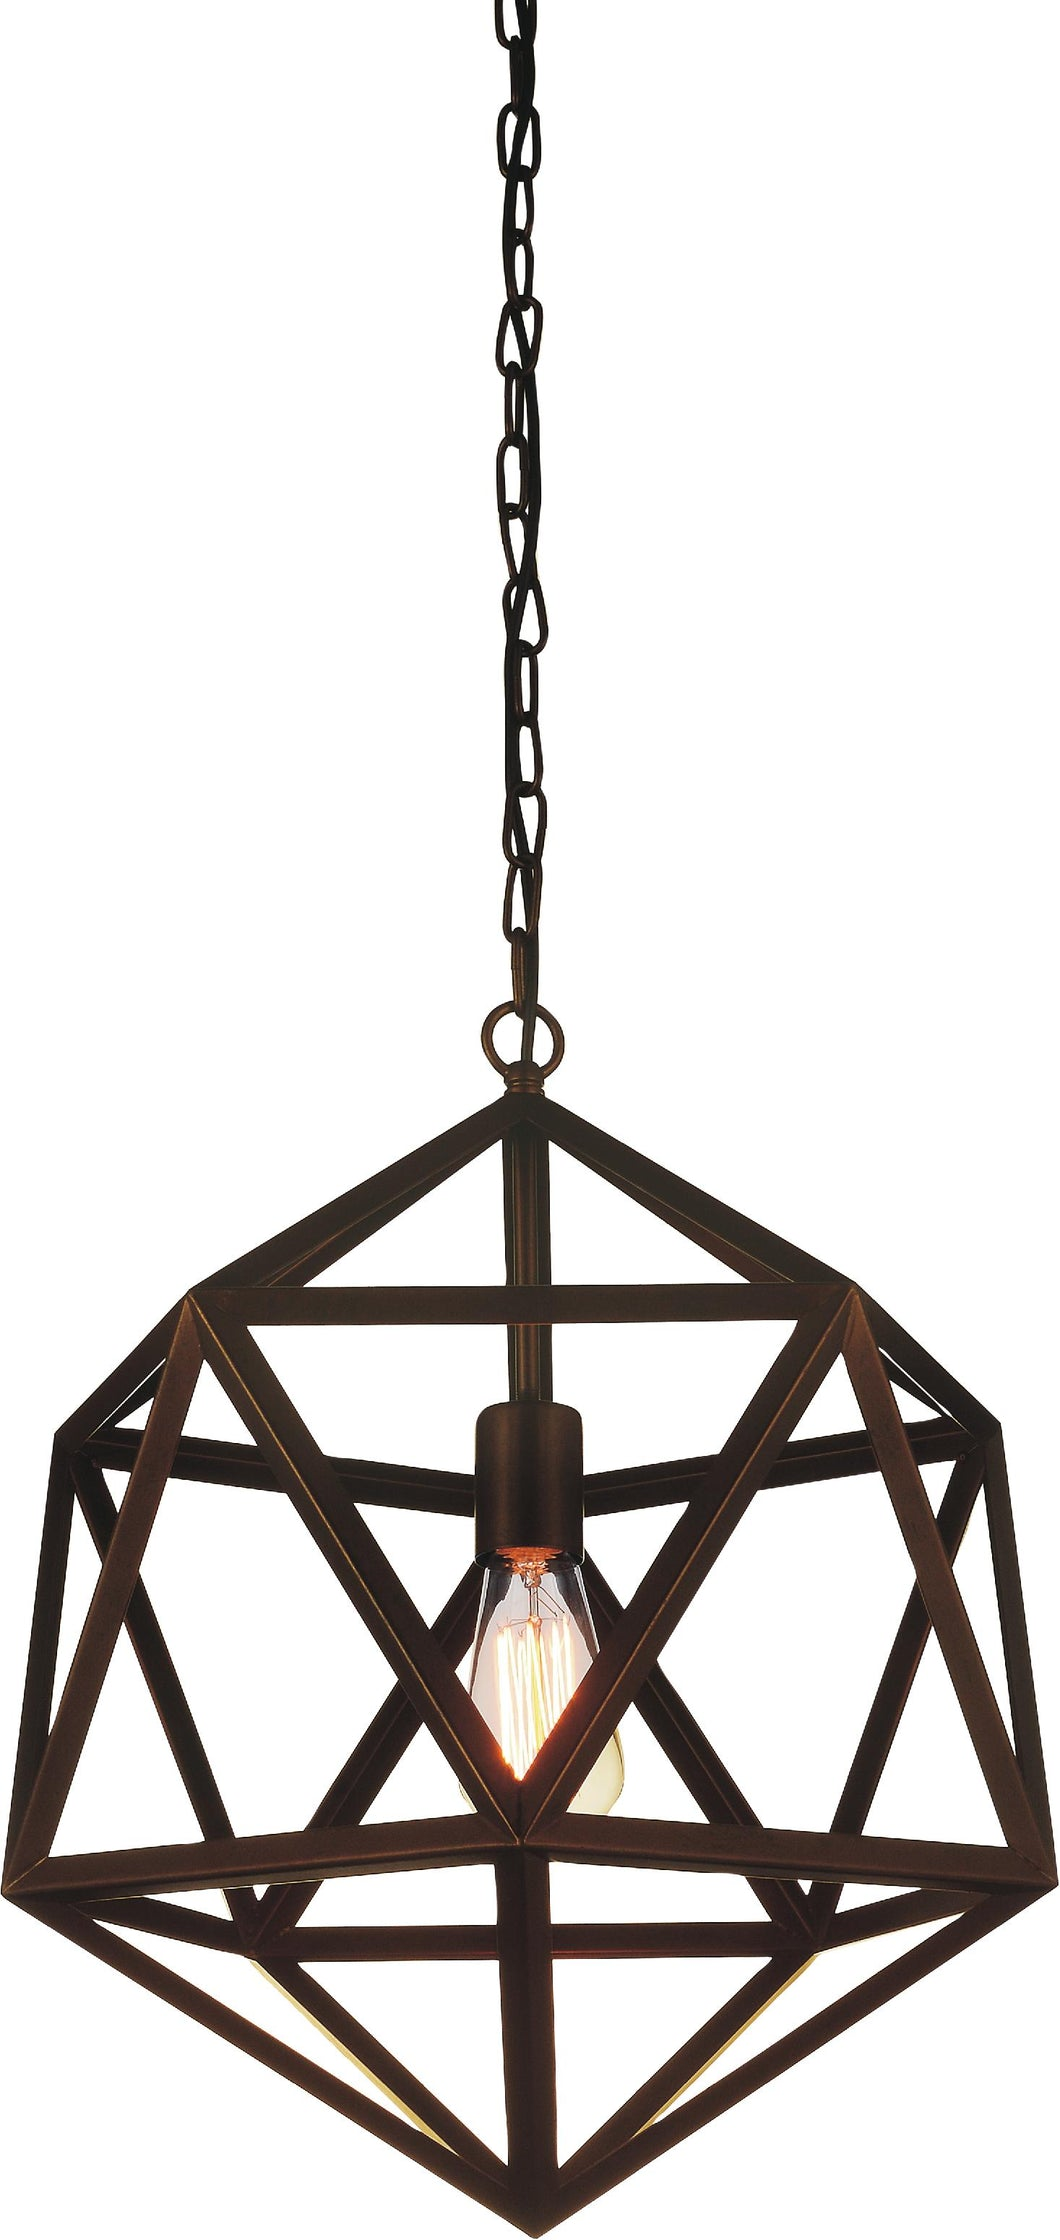 1 Light Down Mini Pendant with Antique Copper finish